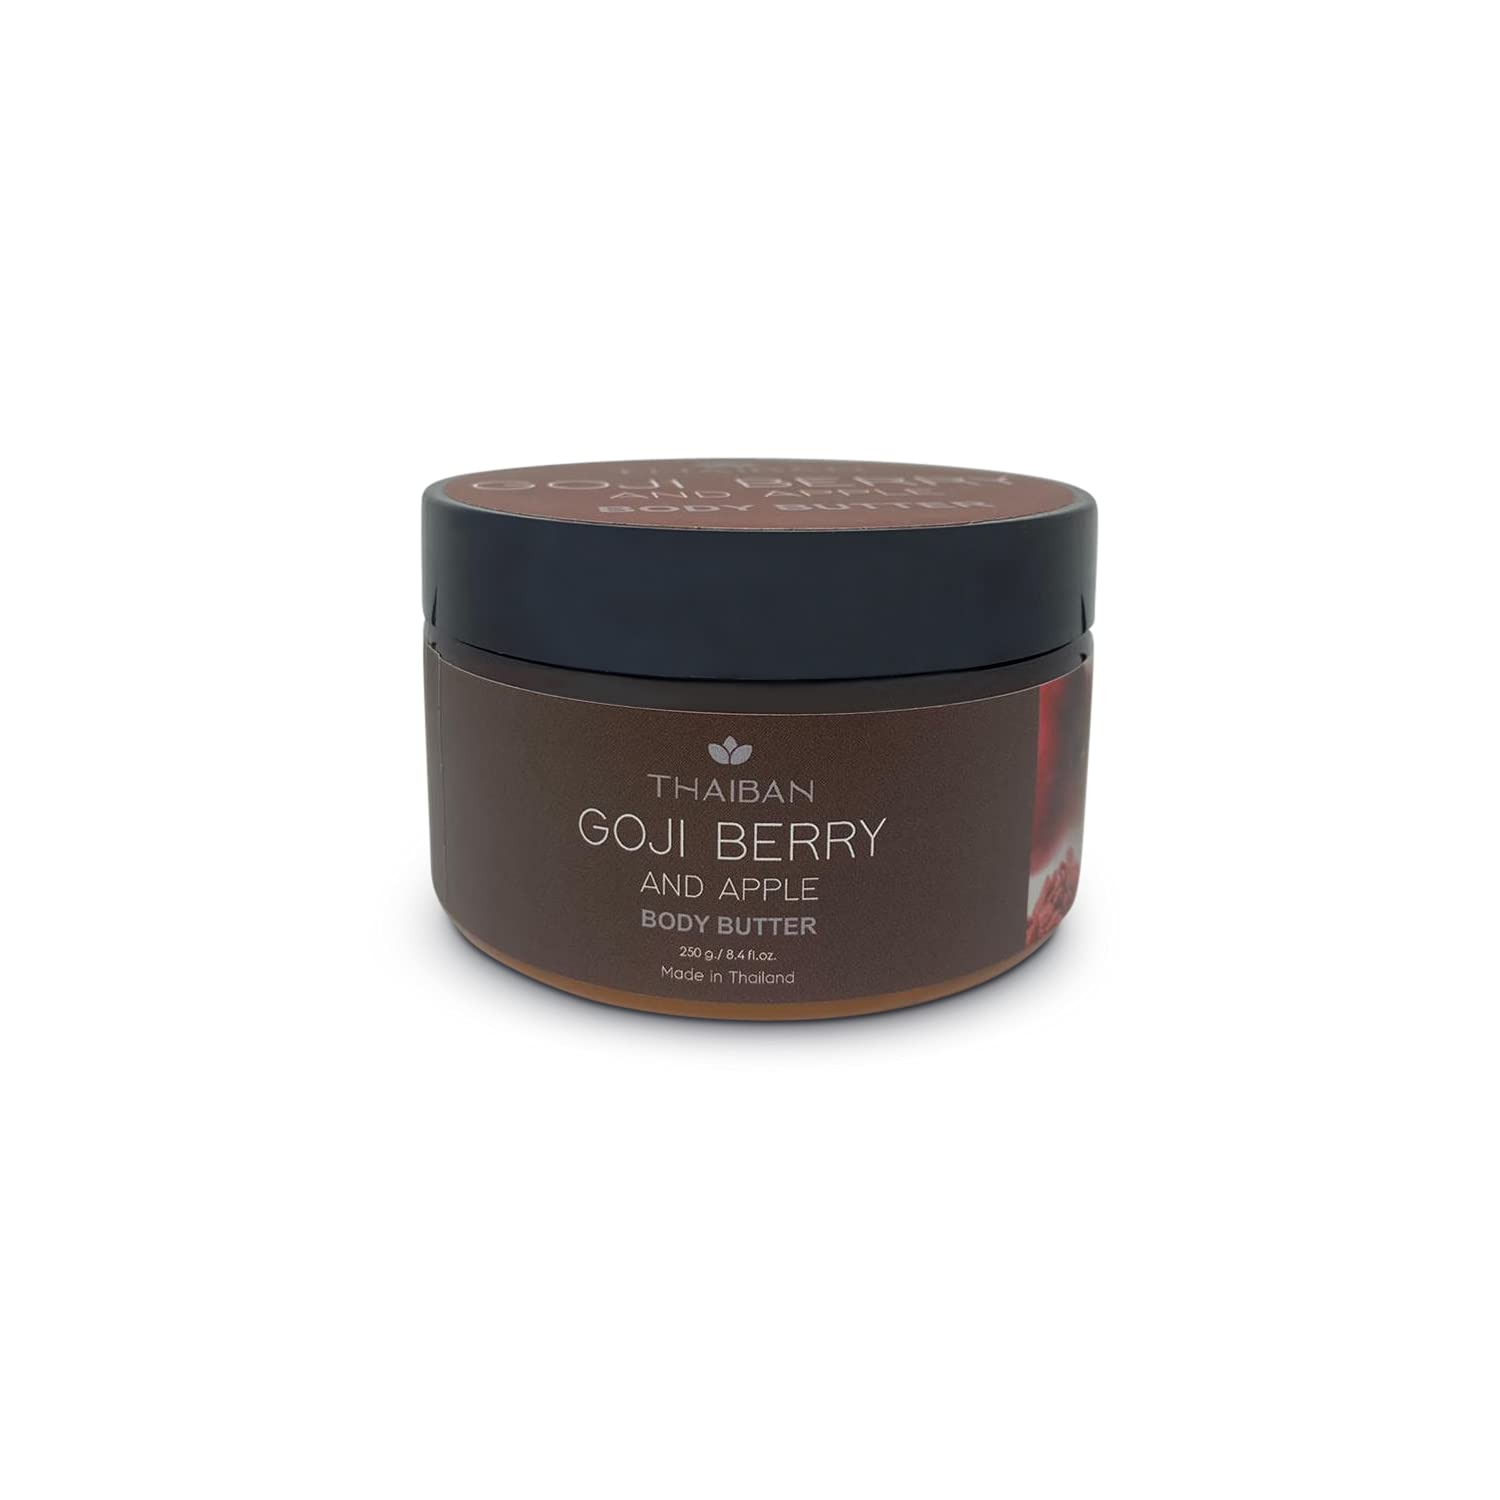 Thaiban Goji Berry and Apple Body Butter 250g 8.4 oz.